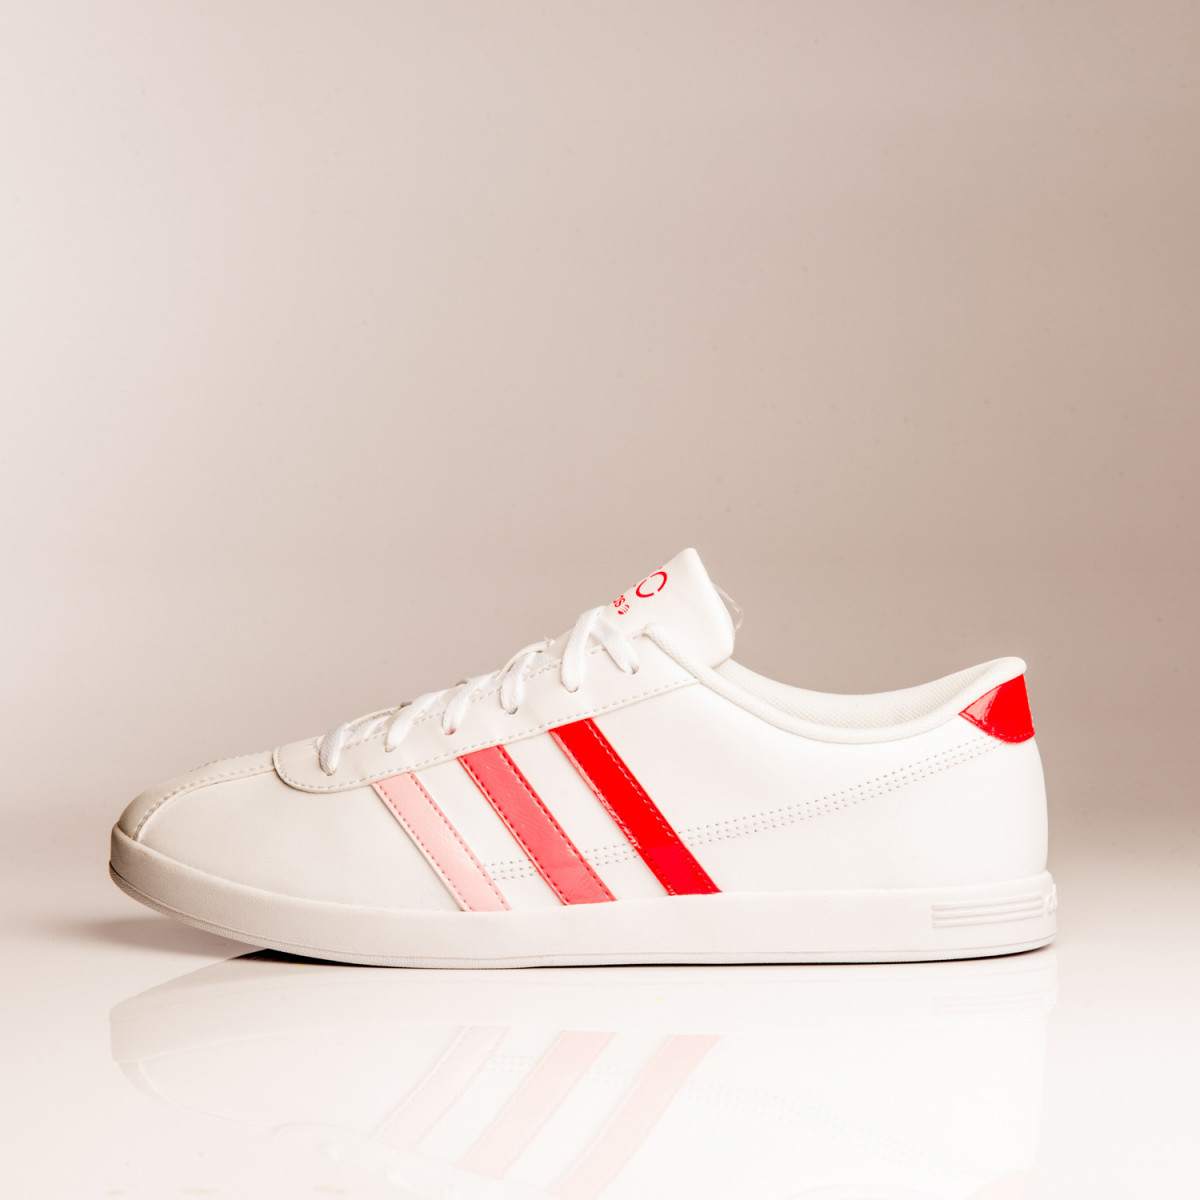 ZAPATILLAS ADIDAS NEO VLNEO COURT W RUN